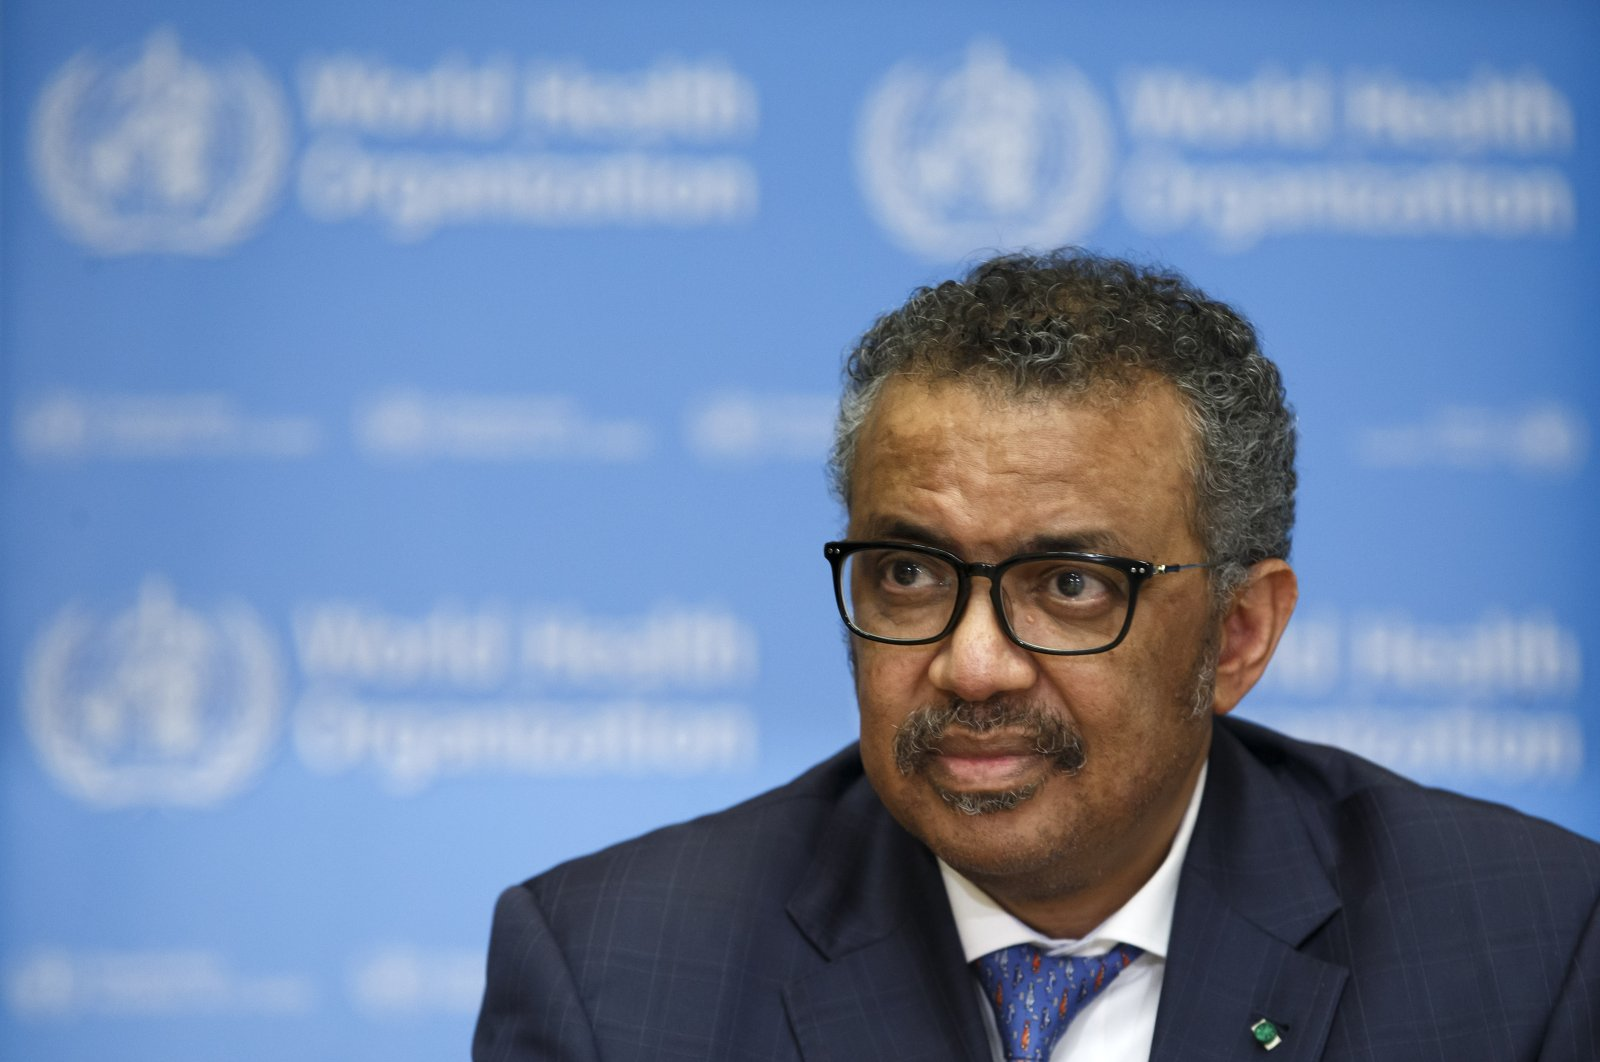 Tedros Adhanom Ghebreyesus, director-general of the World Health Organization (WHO), informs the media about the update on the situation regarding the COVID-19, during a press conference at the World Health Organization (WHO) headquarters in Geneva, Switzerland, Feb. 17, 2020. (EPA-EFE Photo)